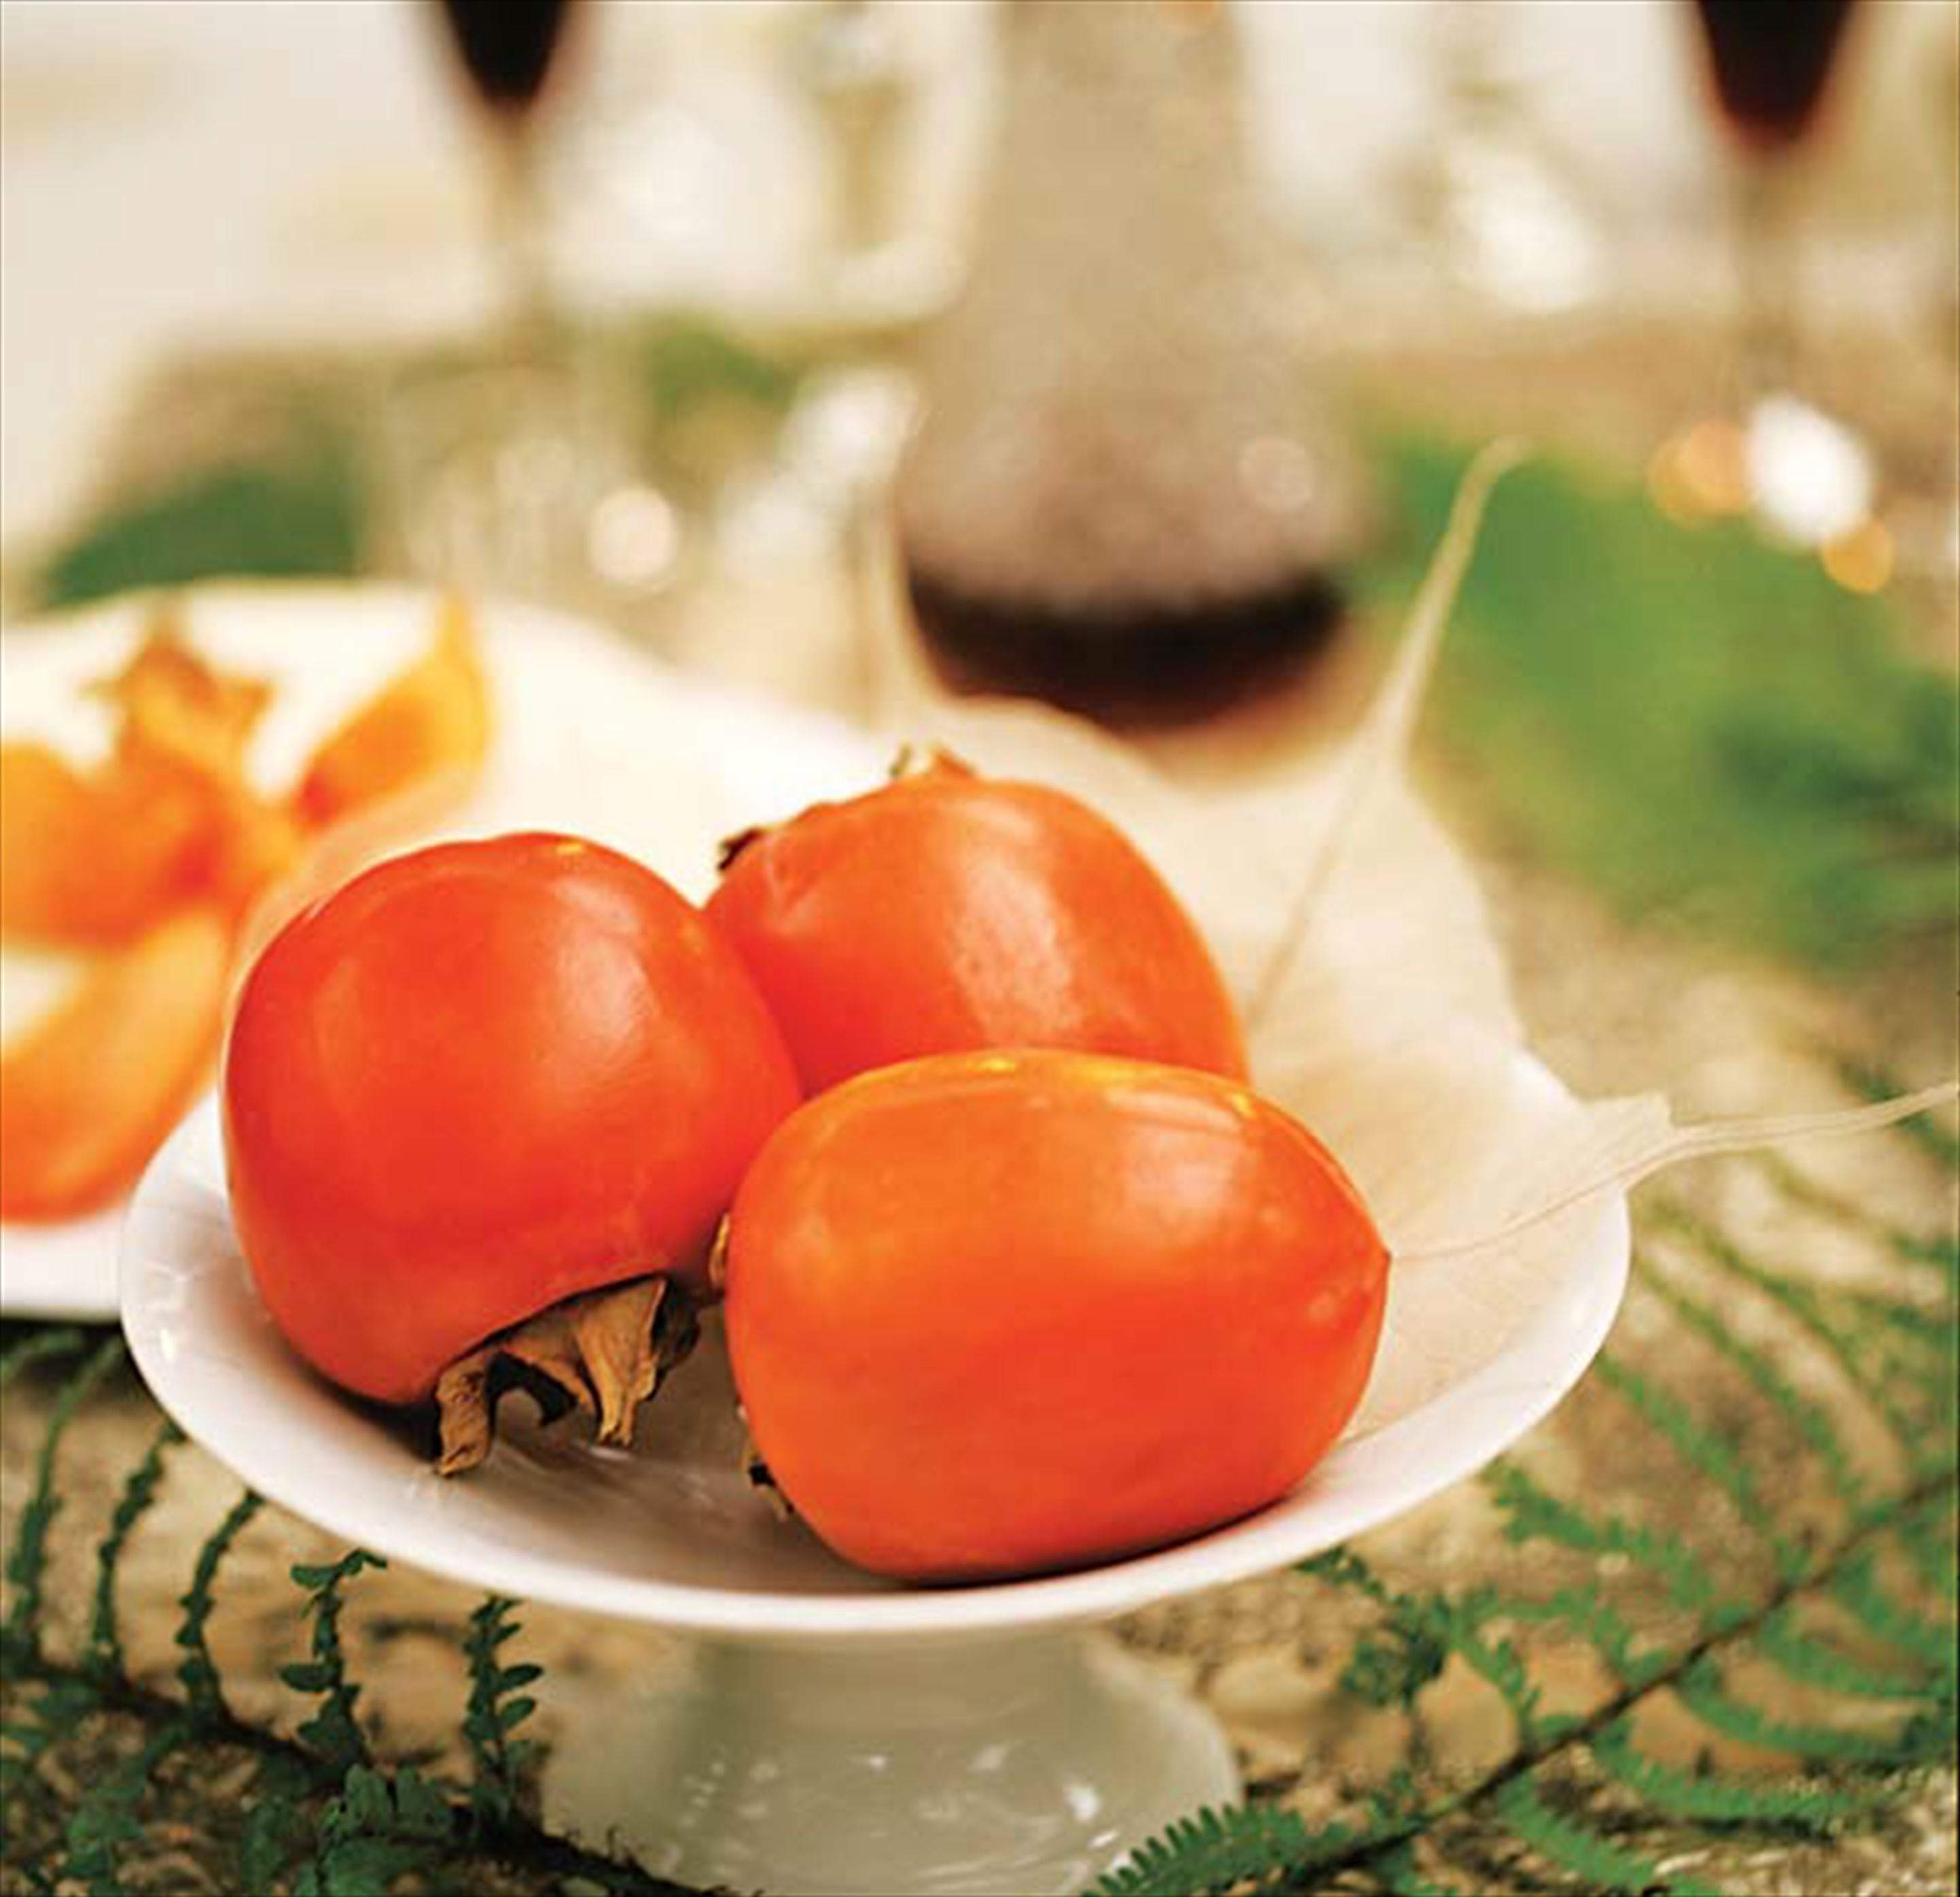 Roasted persimmons